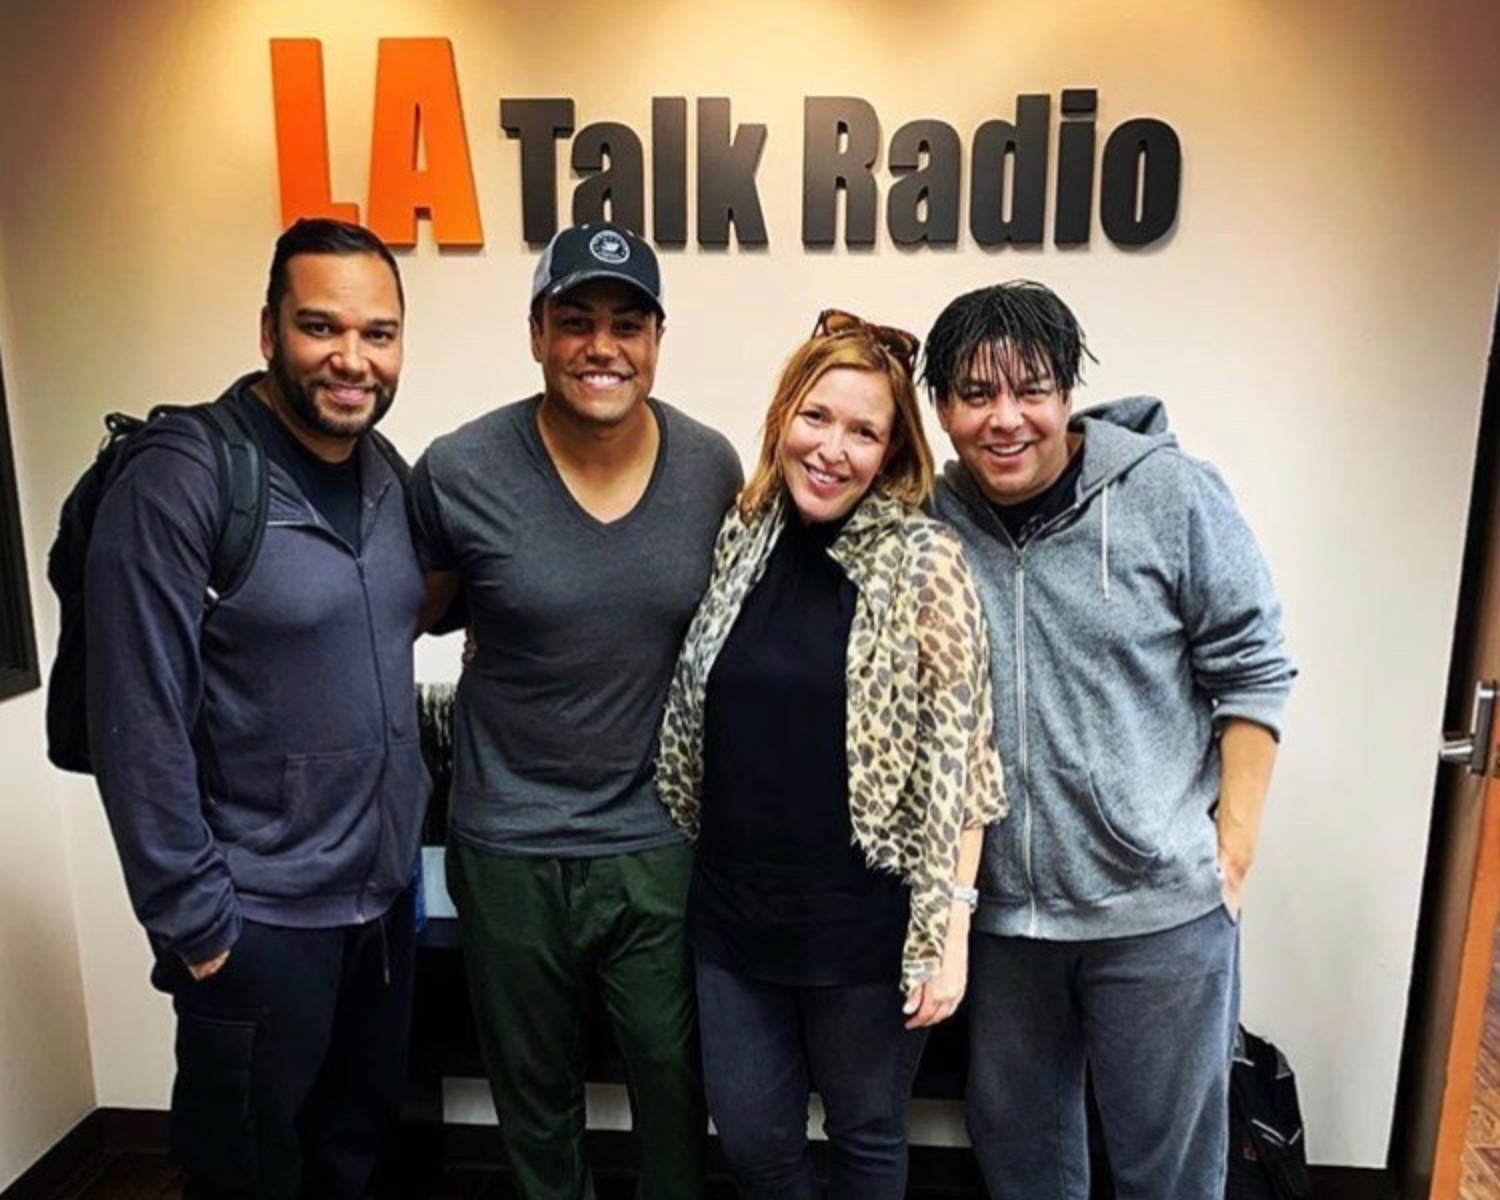 LA Talk Radio - The Power of Love Show -